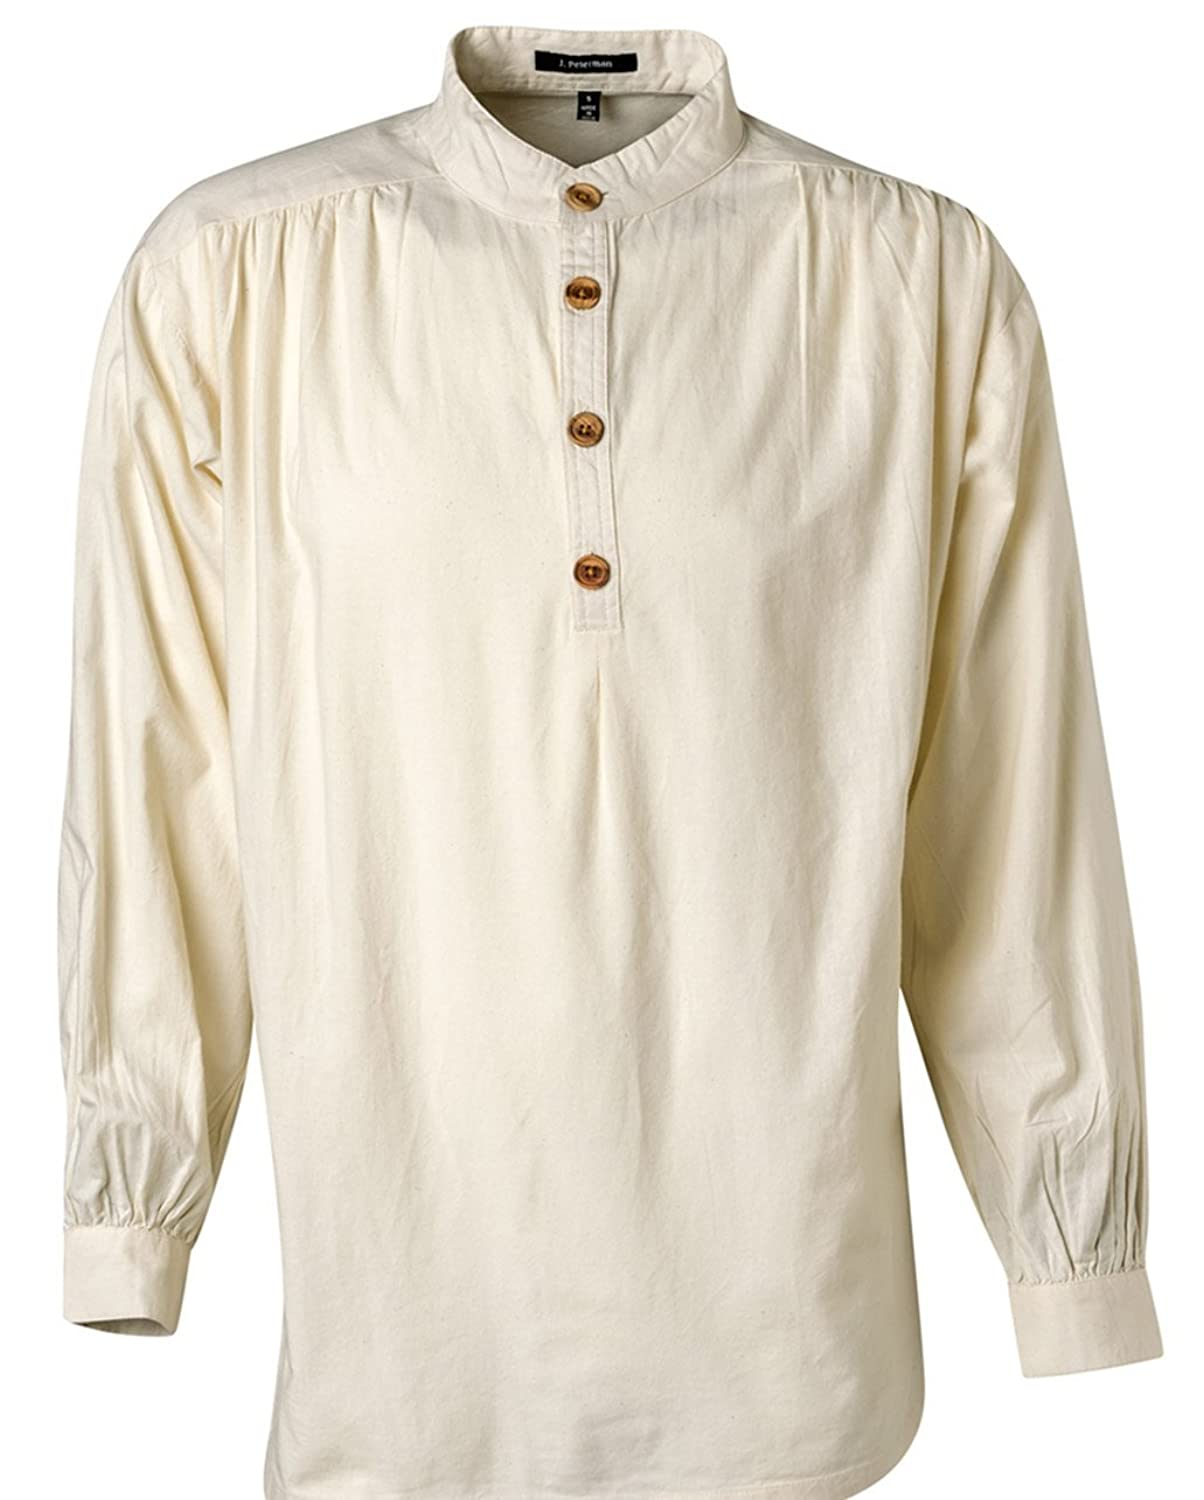 Edwardian Men's Shirts & Sweaters The J. Peterman Shirt $33.35 AT vintagedancer.com